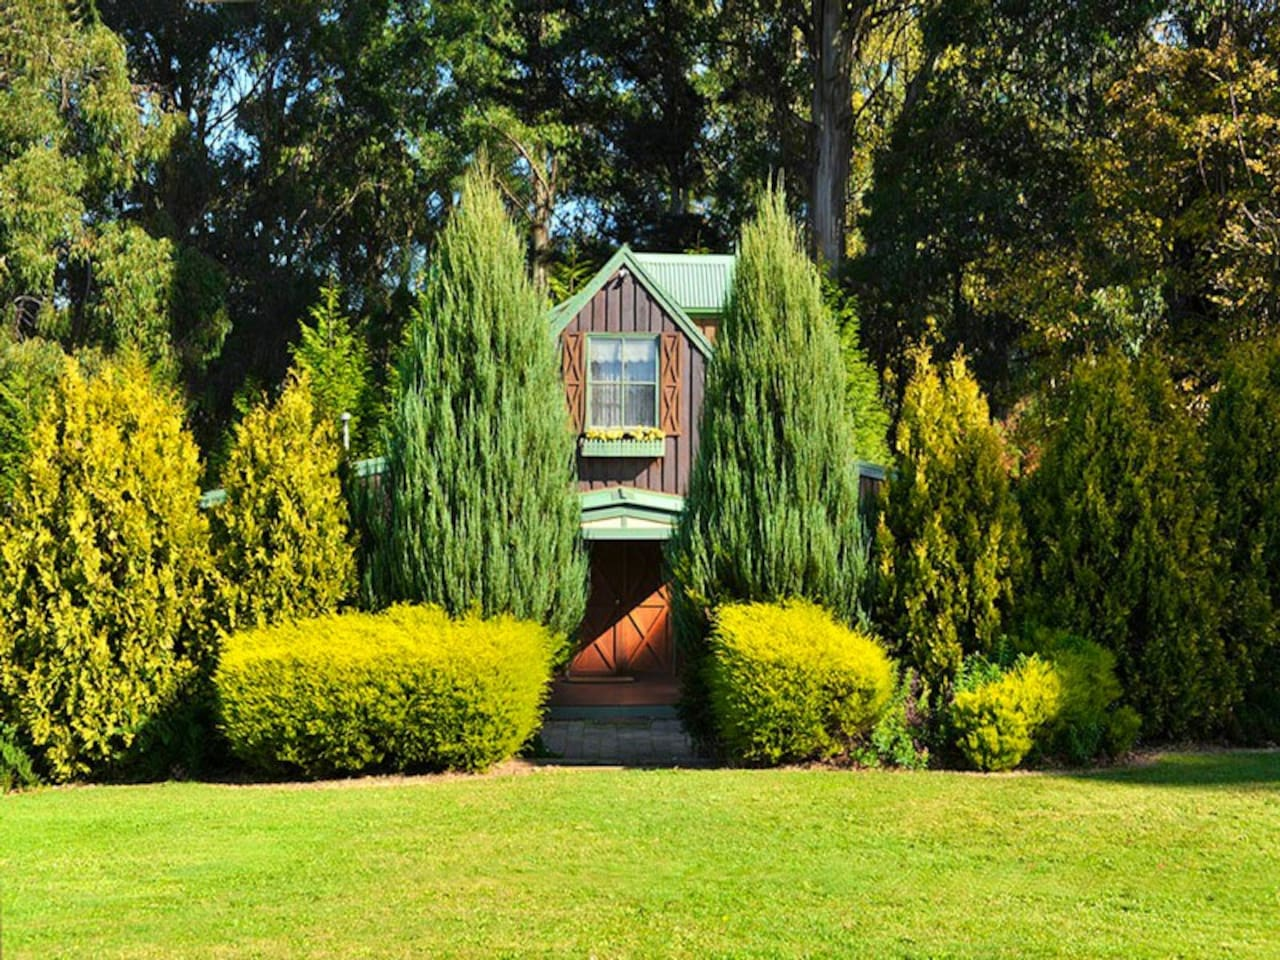 A Gracehill Accommodation Cottage  and surrounding garden